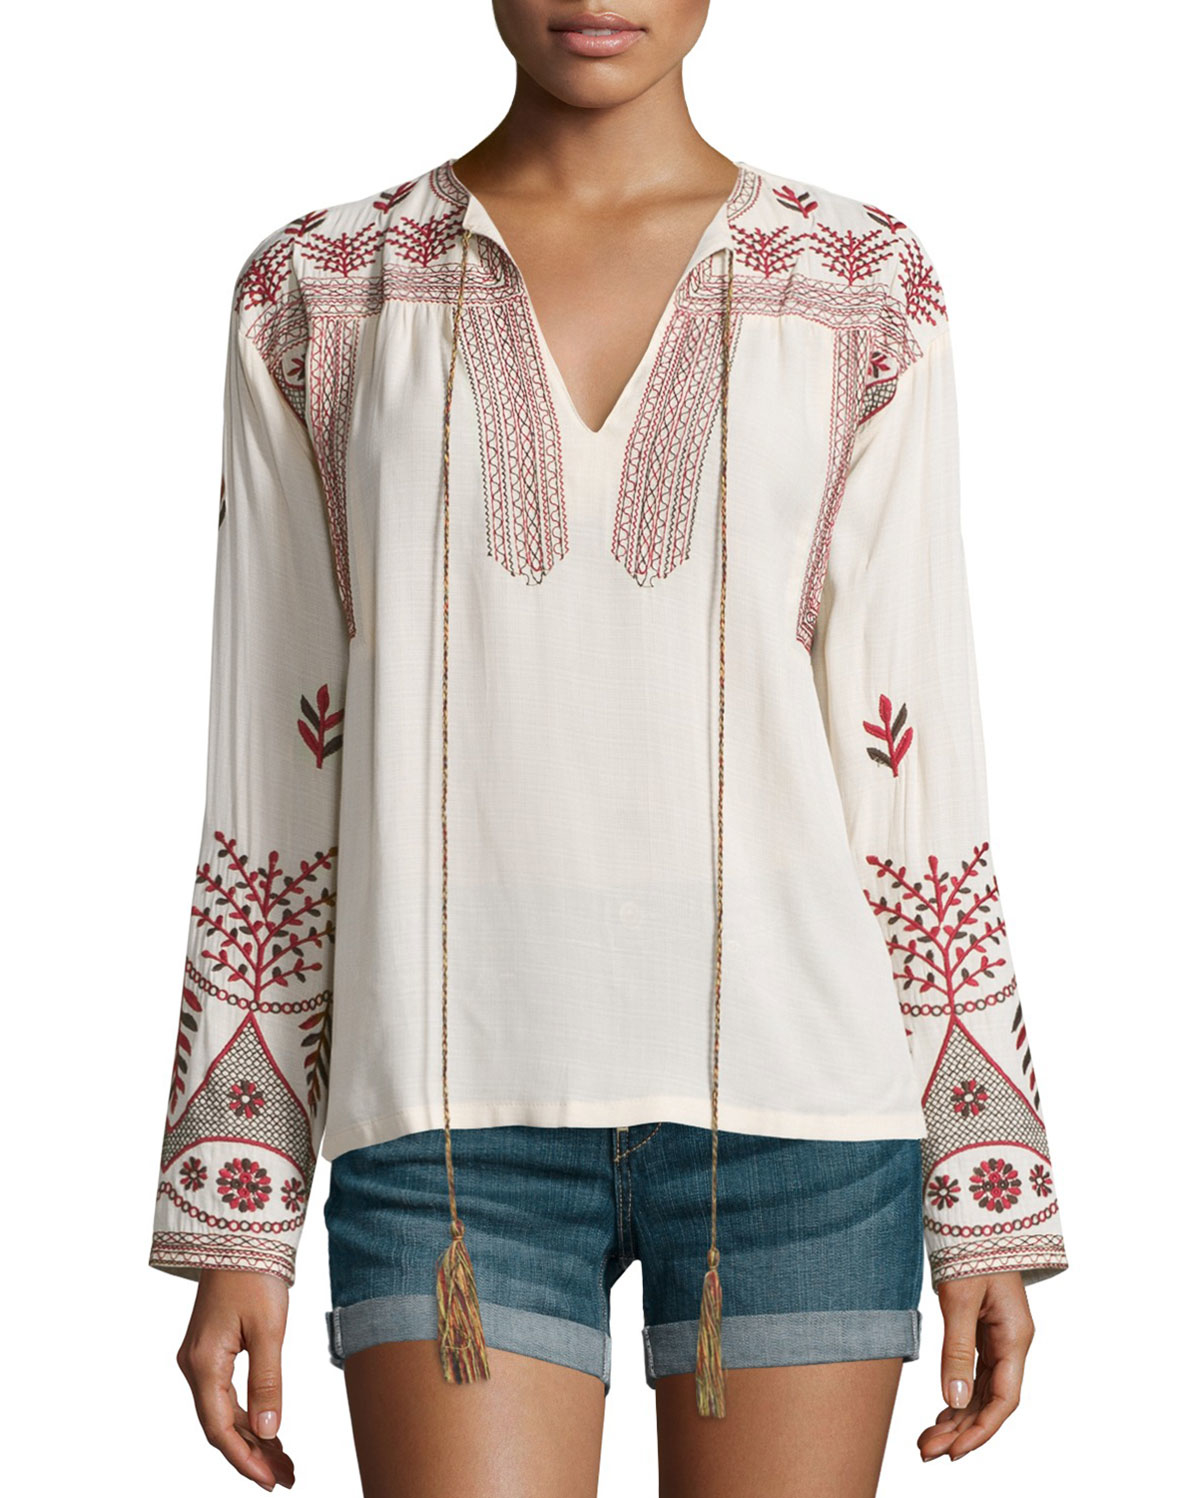 Lyst misa luna long sleeve embroidered top in natural